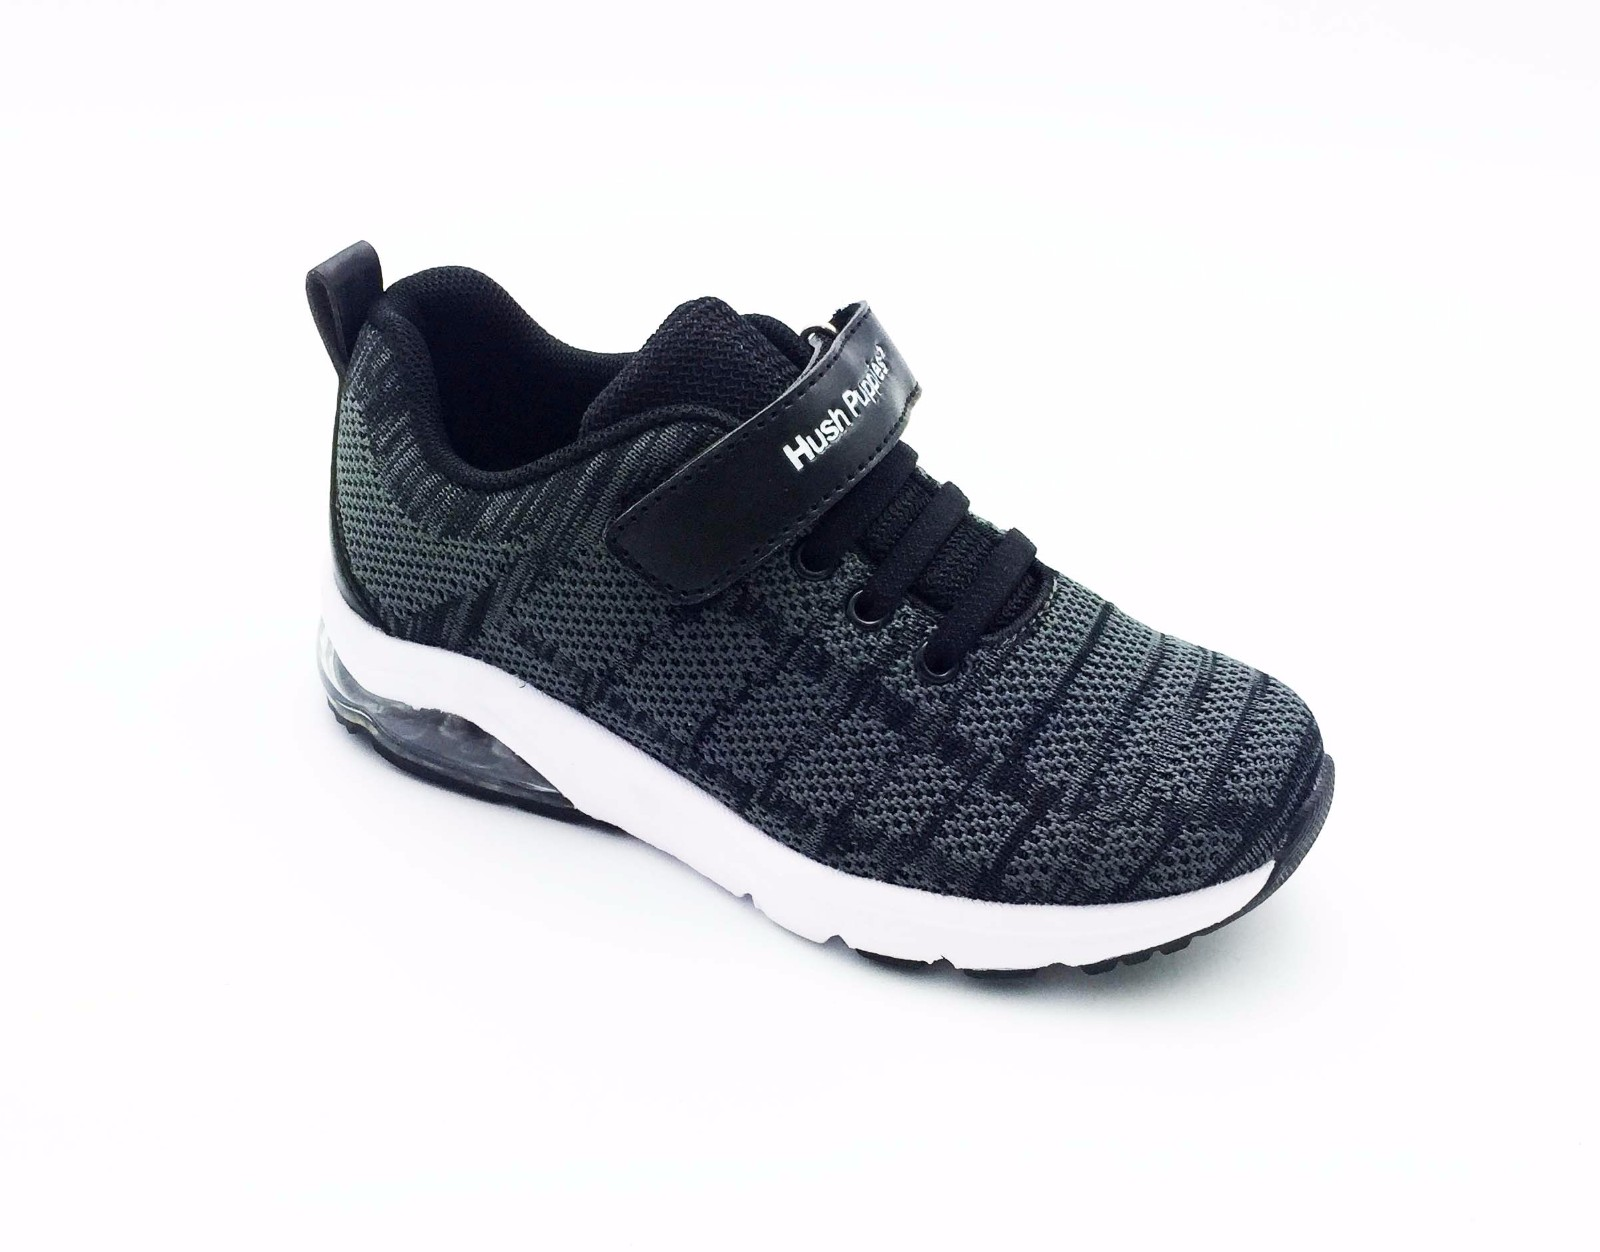 High quality Kids Breathable shoes Spring children Casual boys and girls Lace-up Flyknit Fashion shoes Quotes,China Kids Breathable shoes Spring children Casual boys and girls Lace-up Flyknit Fashion shoes Factory,Kids Breathable shoes Spring children Casual boys and girls Lace-up Flyknit Fashion shoes Purchasing